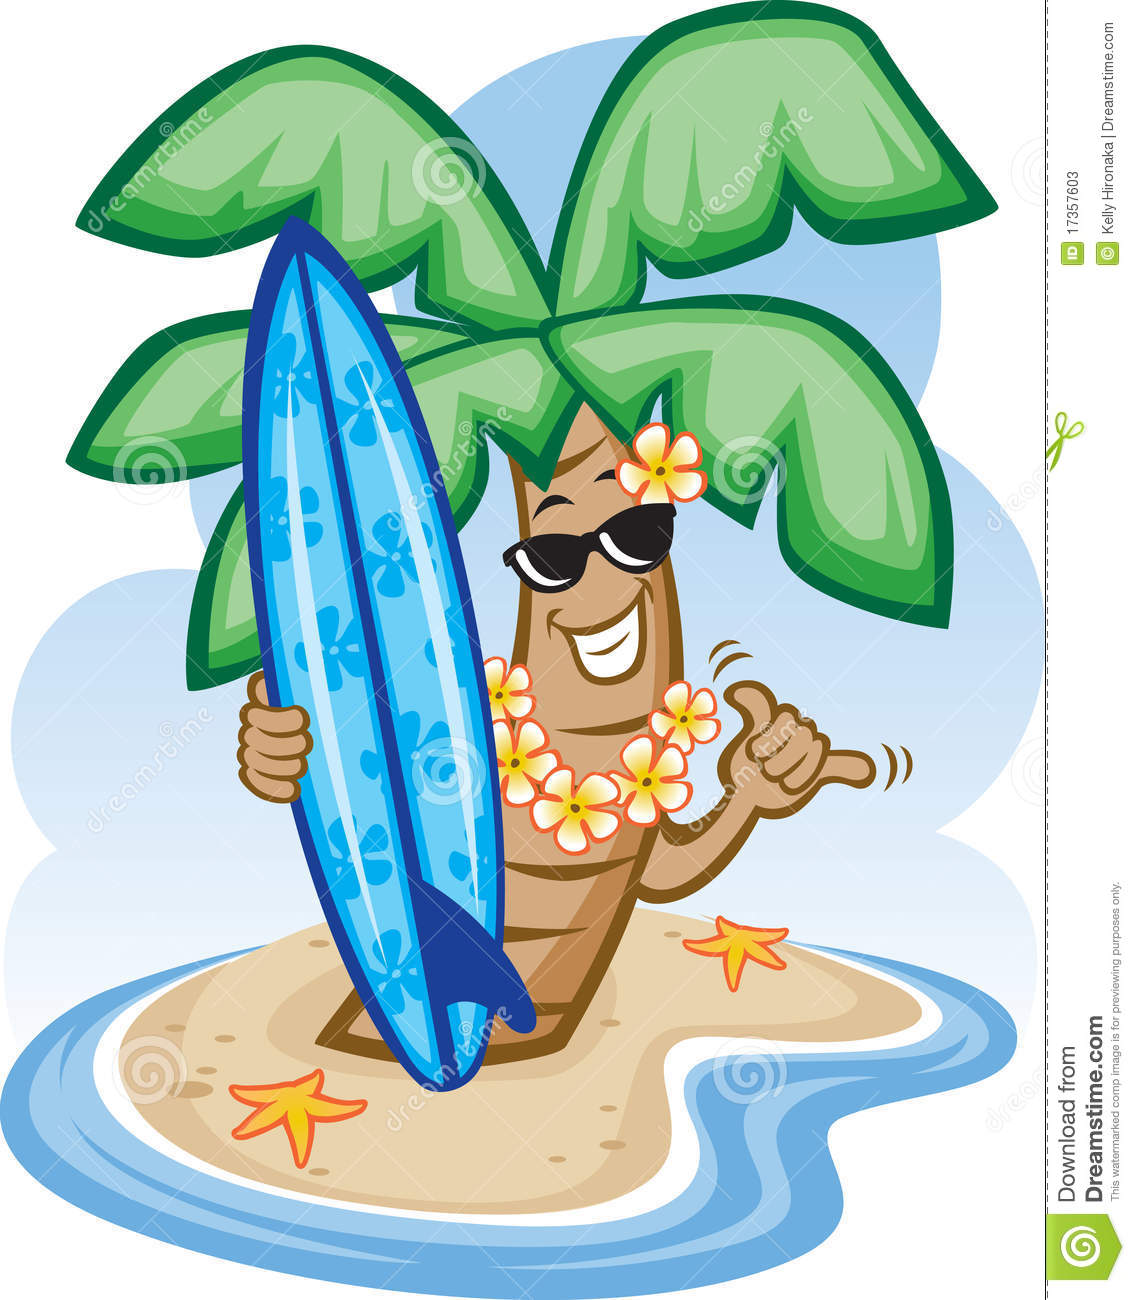 Surfboard clipart standing palm tree clip art transparent stock Palm Tree And Surfboard Stock Photos - Image: 17357603 clip art transparent stock